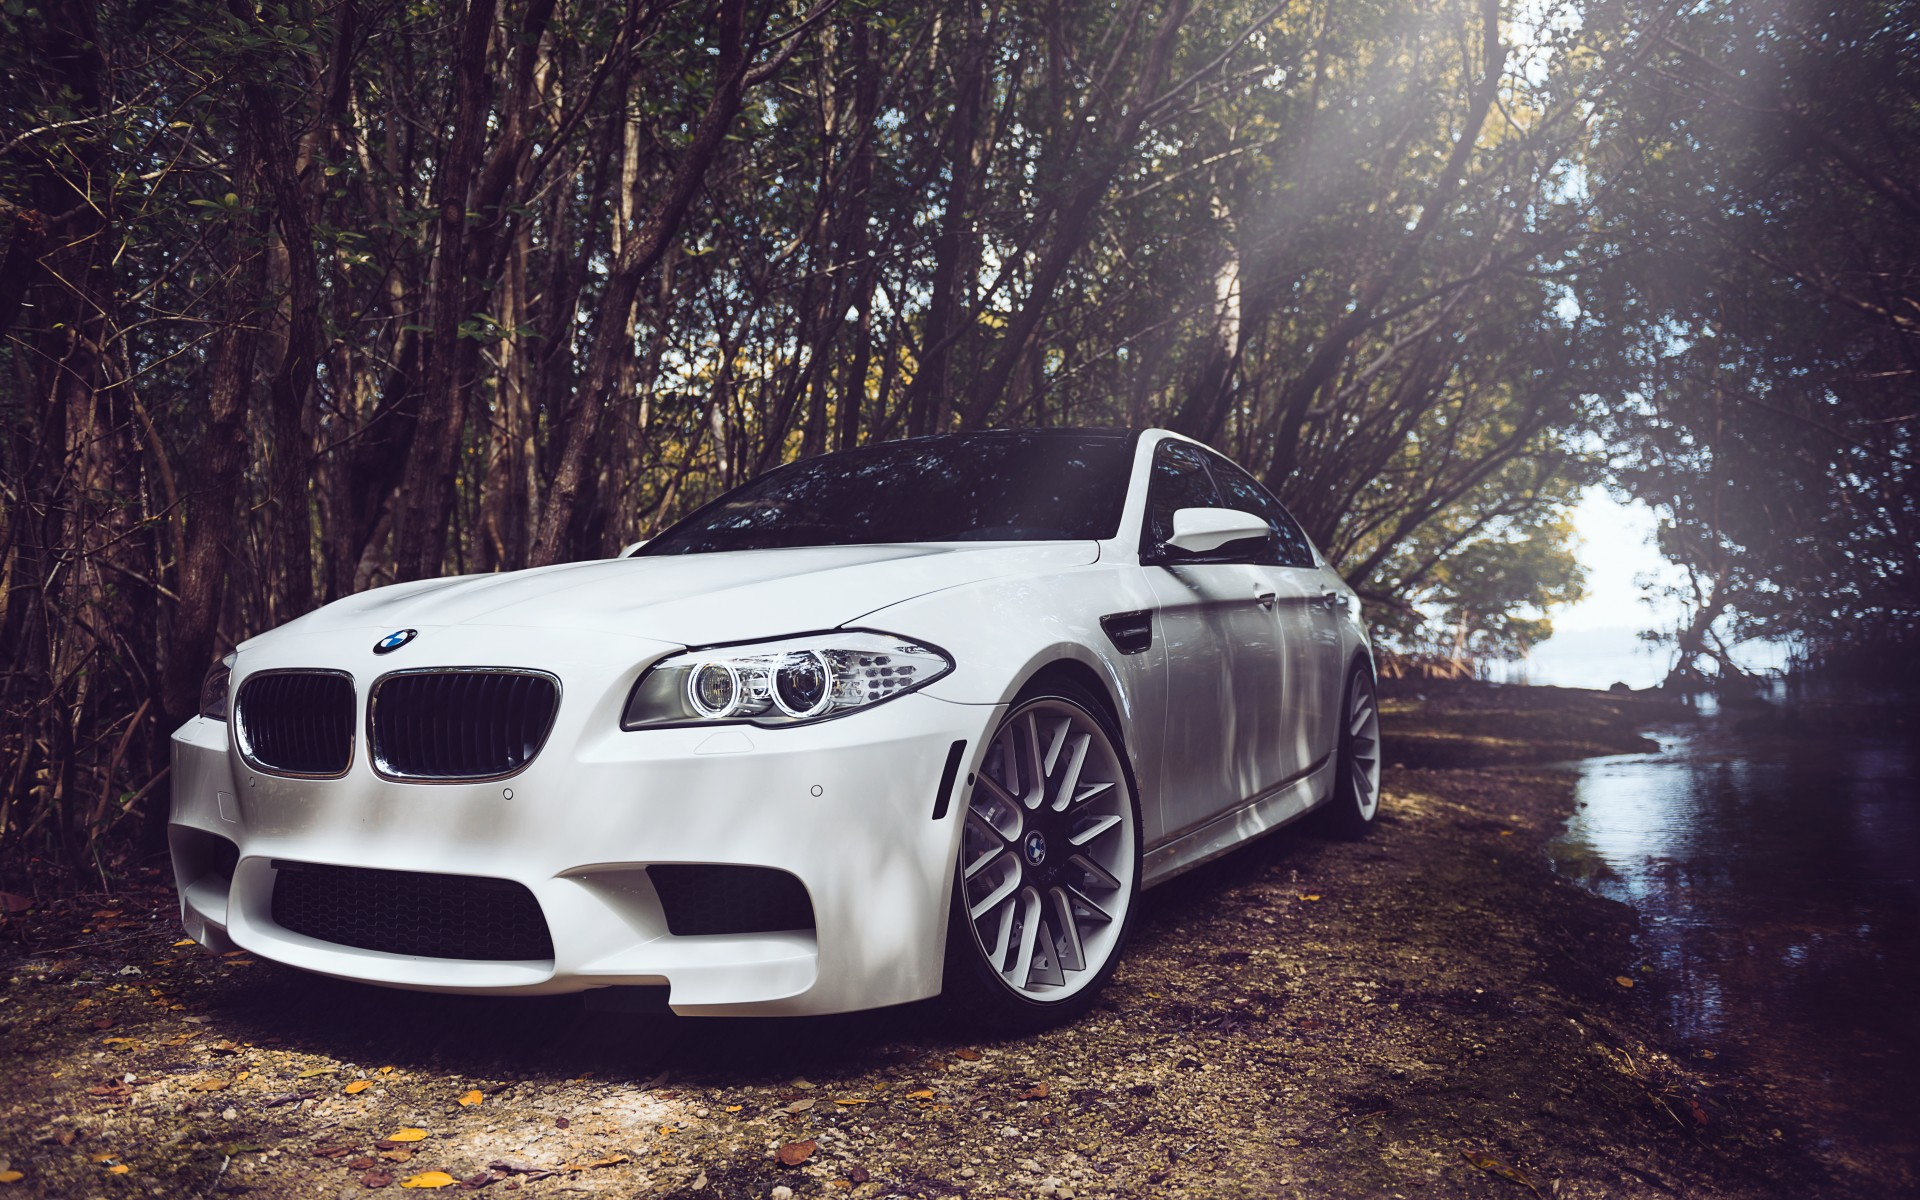 Bmw Hd Wallpapers Background: Backgrounds - Wallpaper Abyss